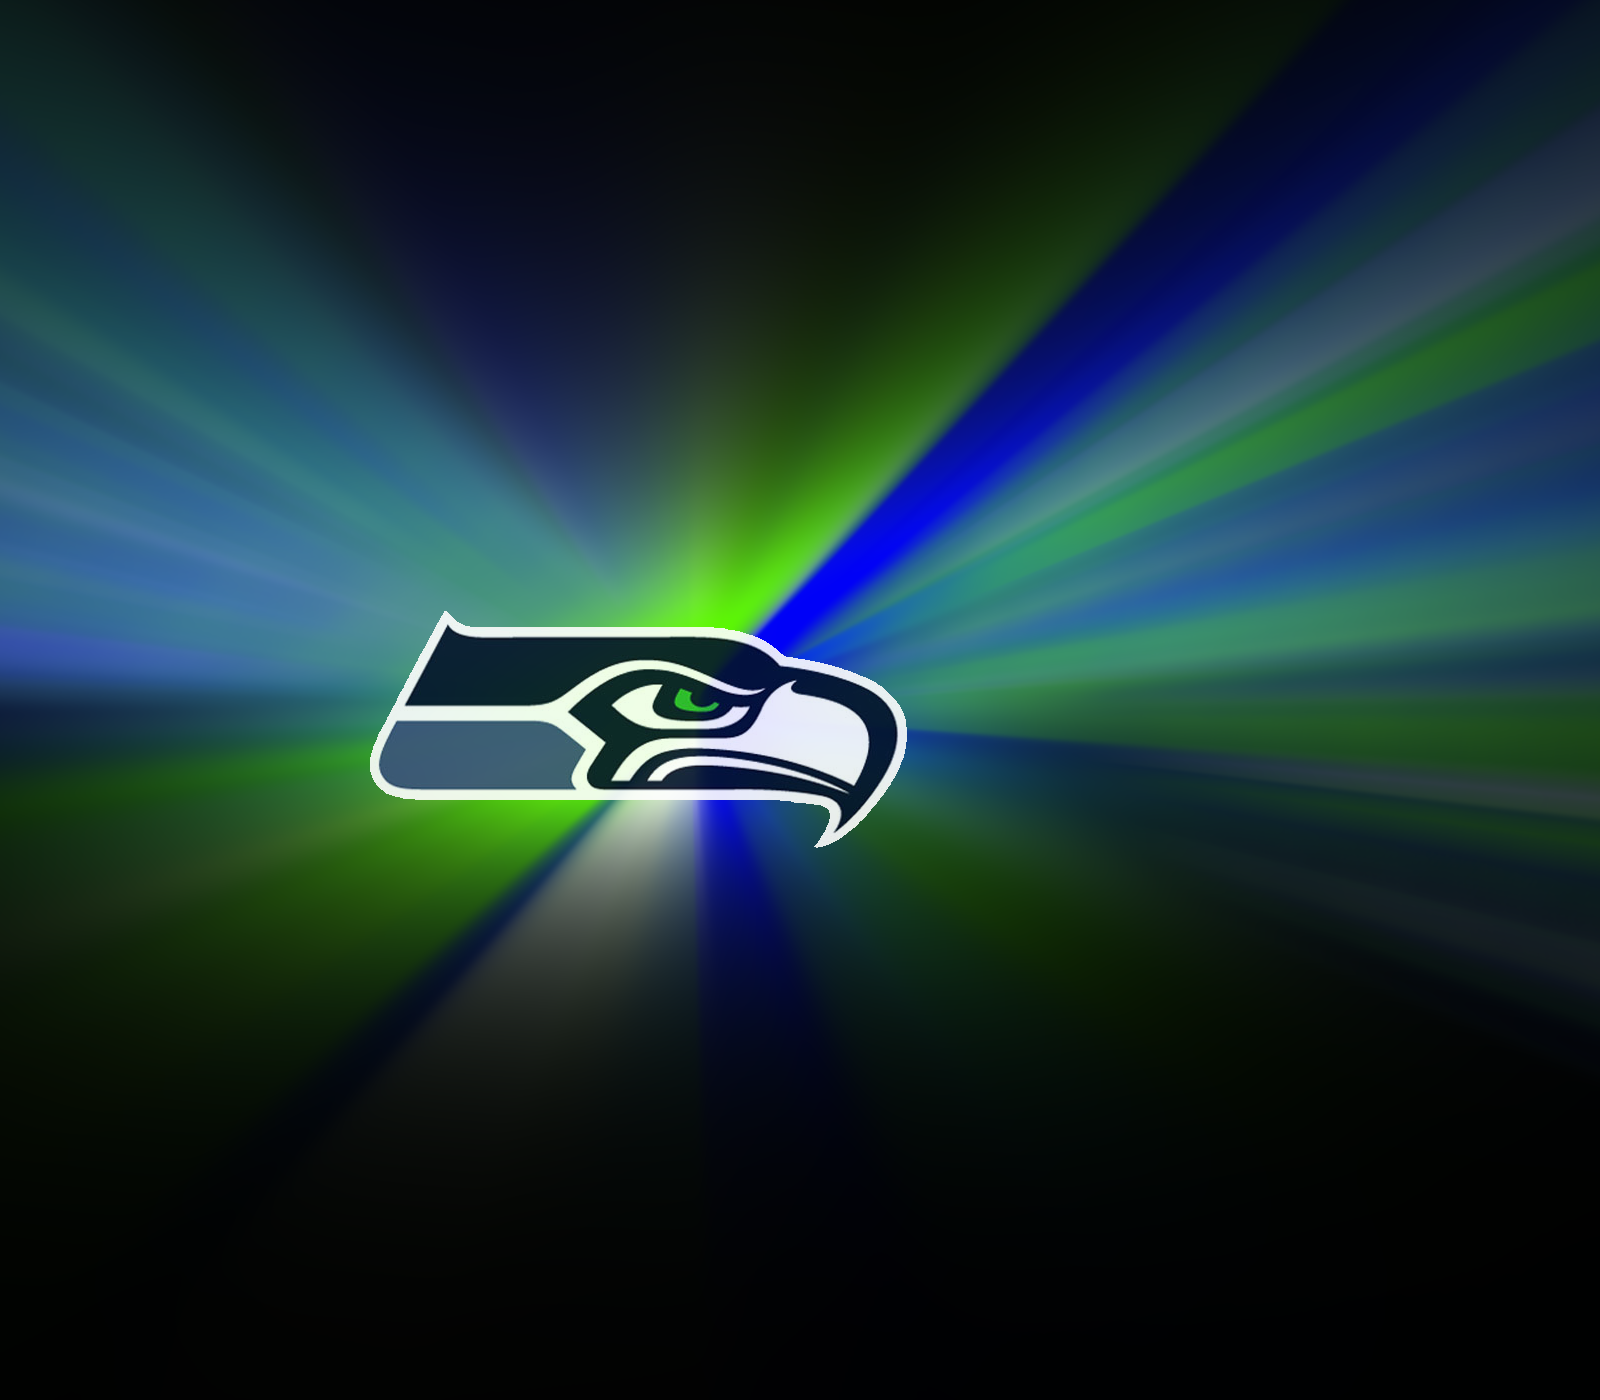 Beautiful Seahawks Images in Full HD